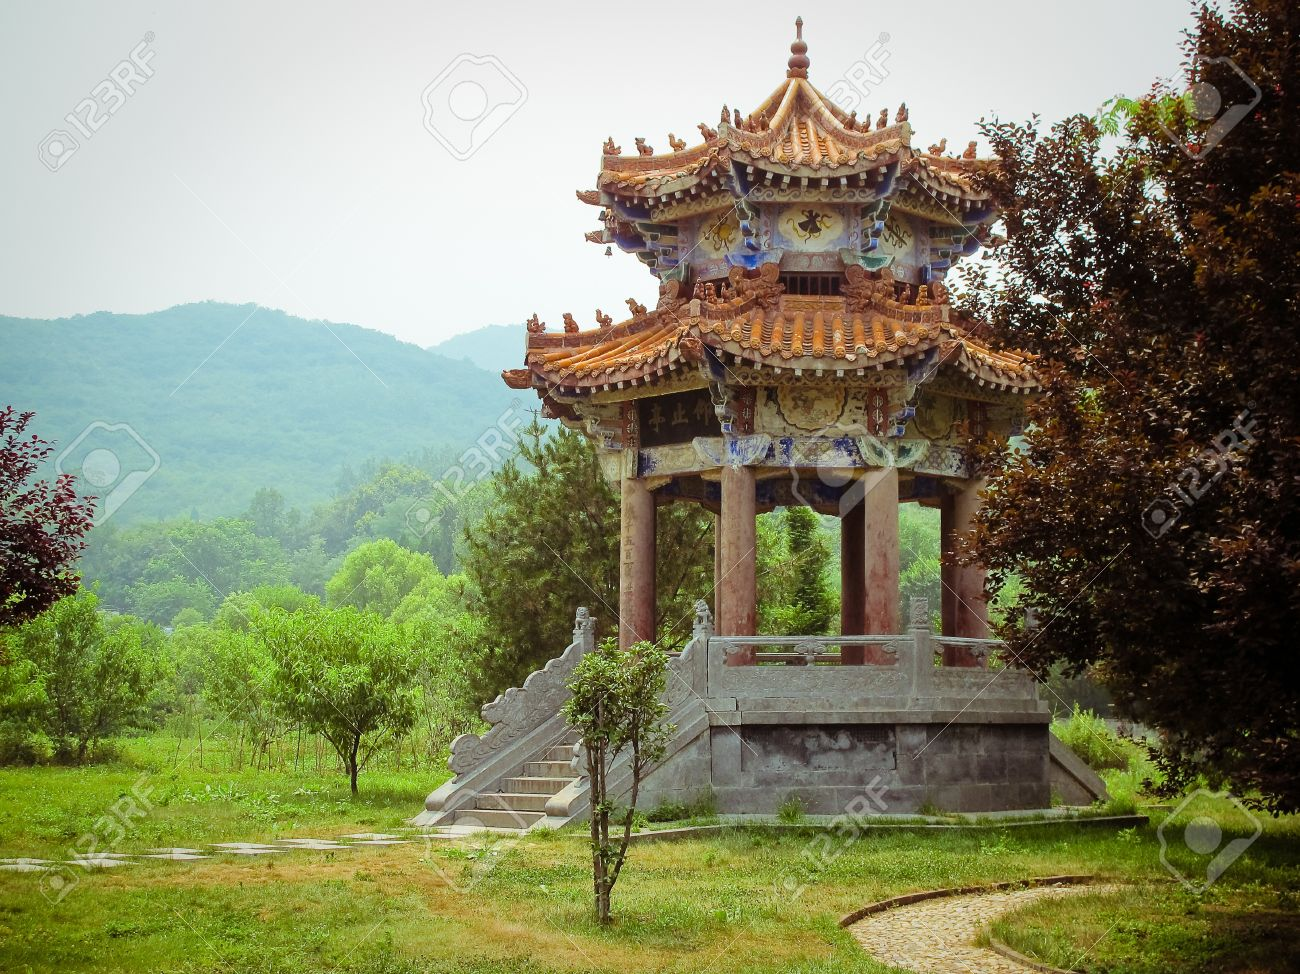 Shaolin Temple in Dengfeng of Henan Province, China. - 10482094